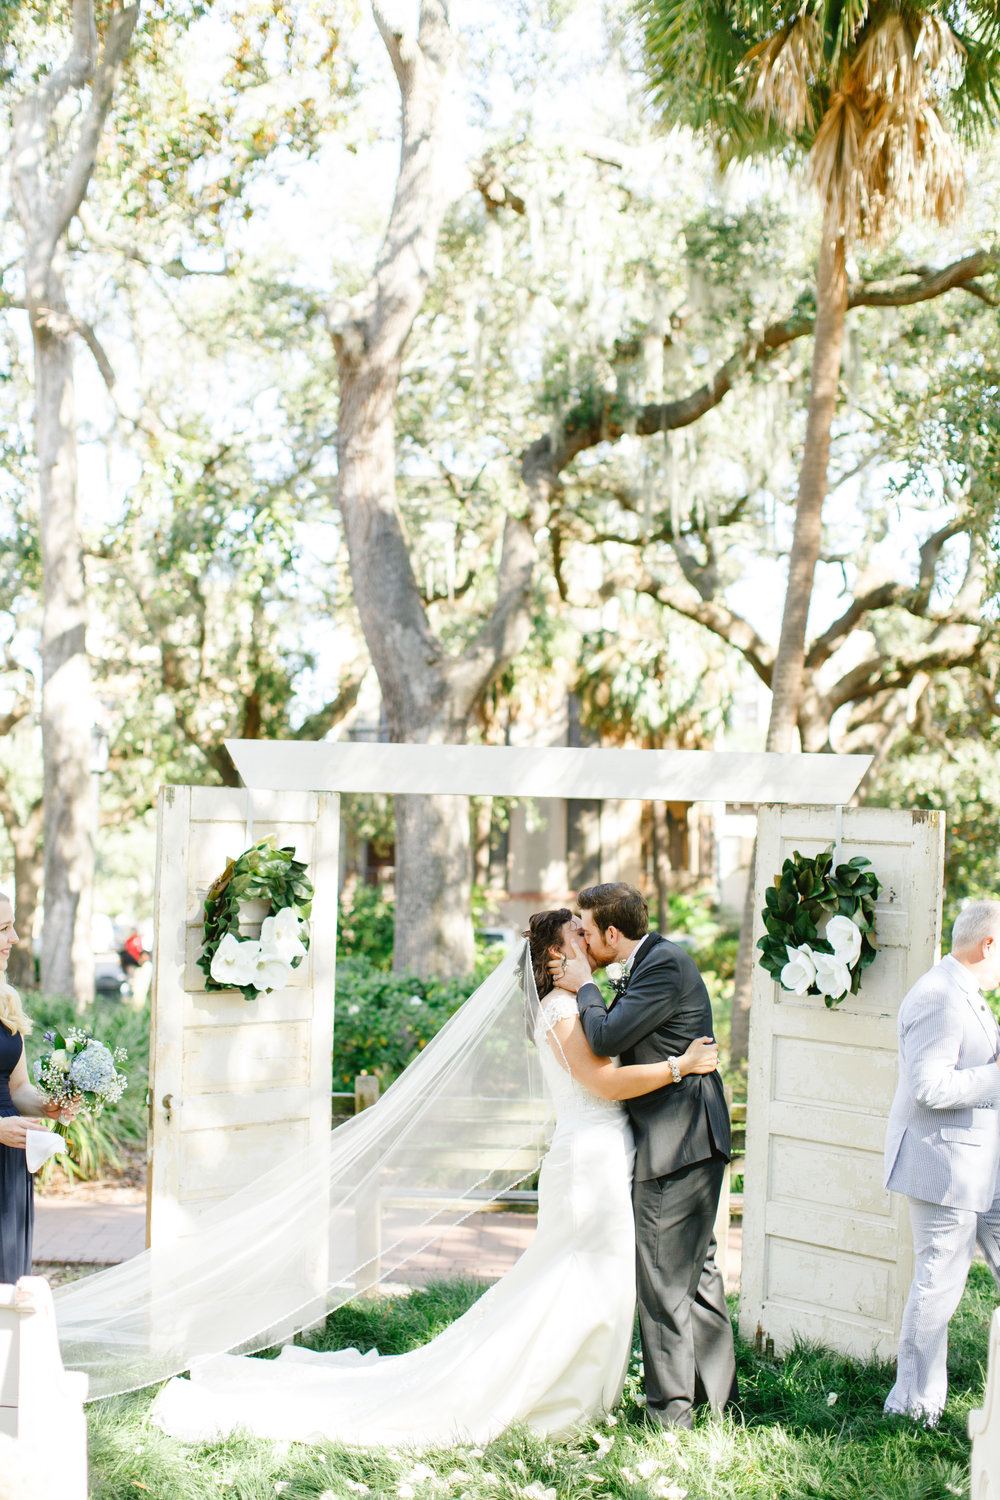 ivory-and-beau-bridal-boutique-aubrie-and-adam-the-happy-bloom-photography-savannah-wedding-planner-savannah-wedding-coordinator-22.jpg